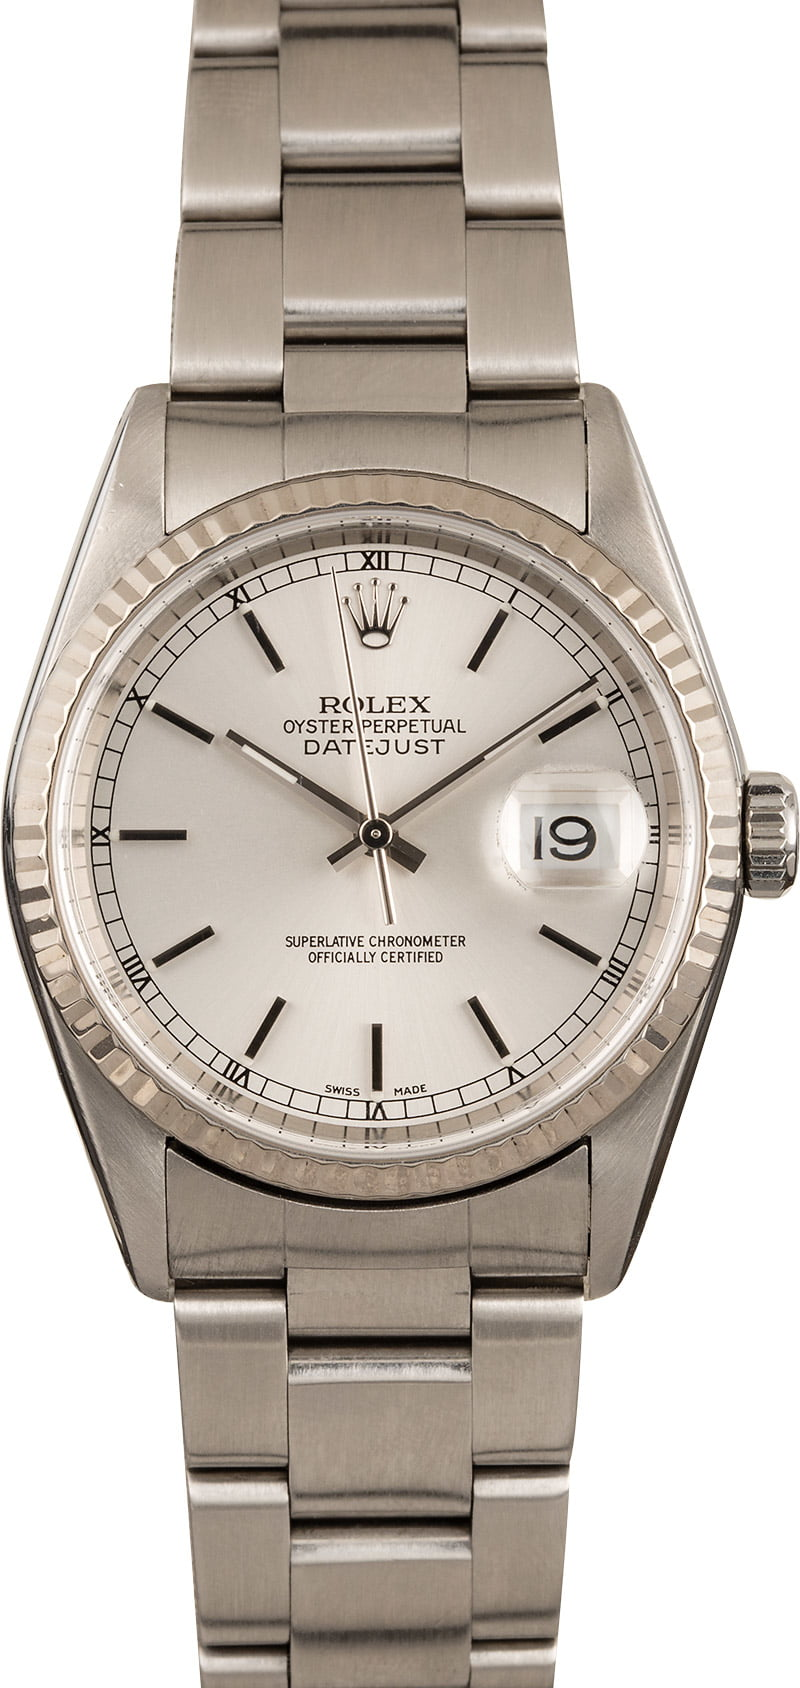 8ead756d0479a Pre-Owned Men's Rolex Datejust Stainless Steel Watch 16200